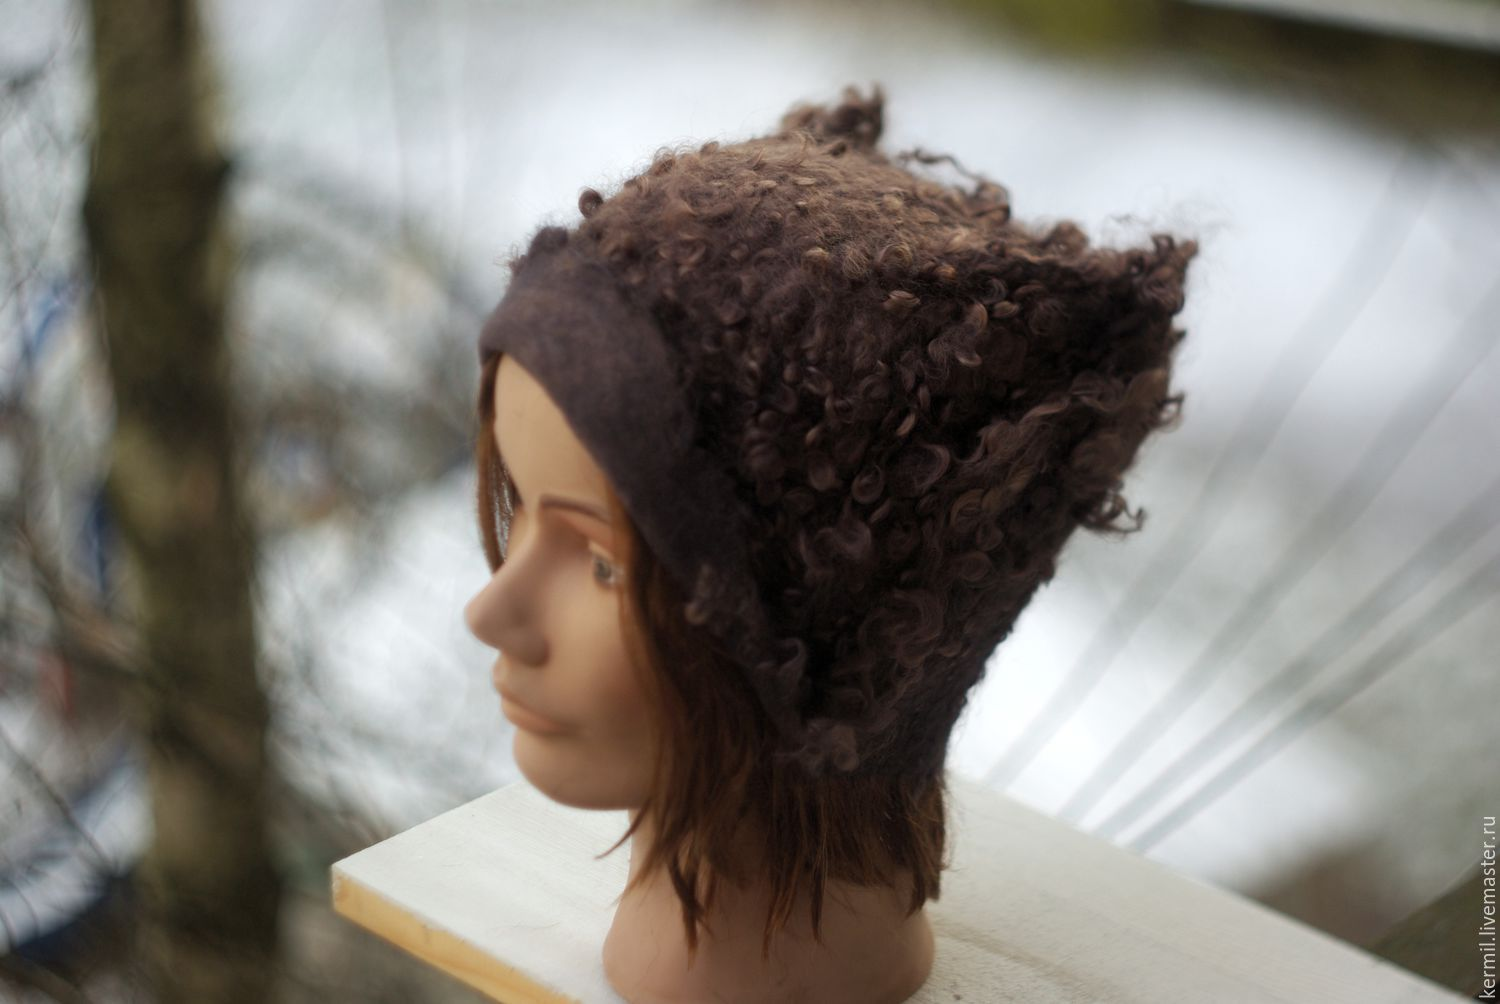 Felted hat 'Chocolate soft', Caps, St. Petersburg,  Фото №1